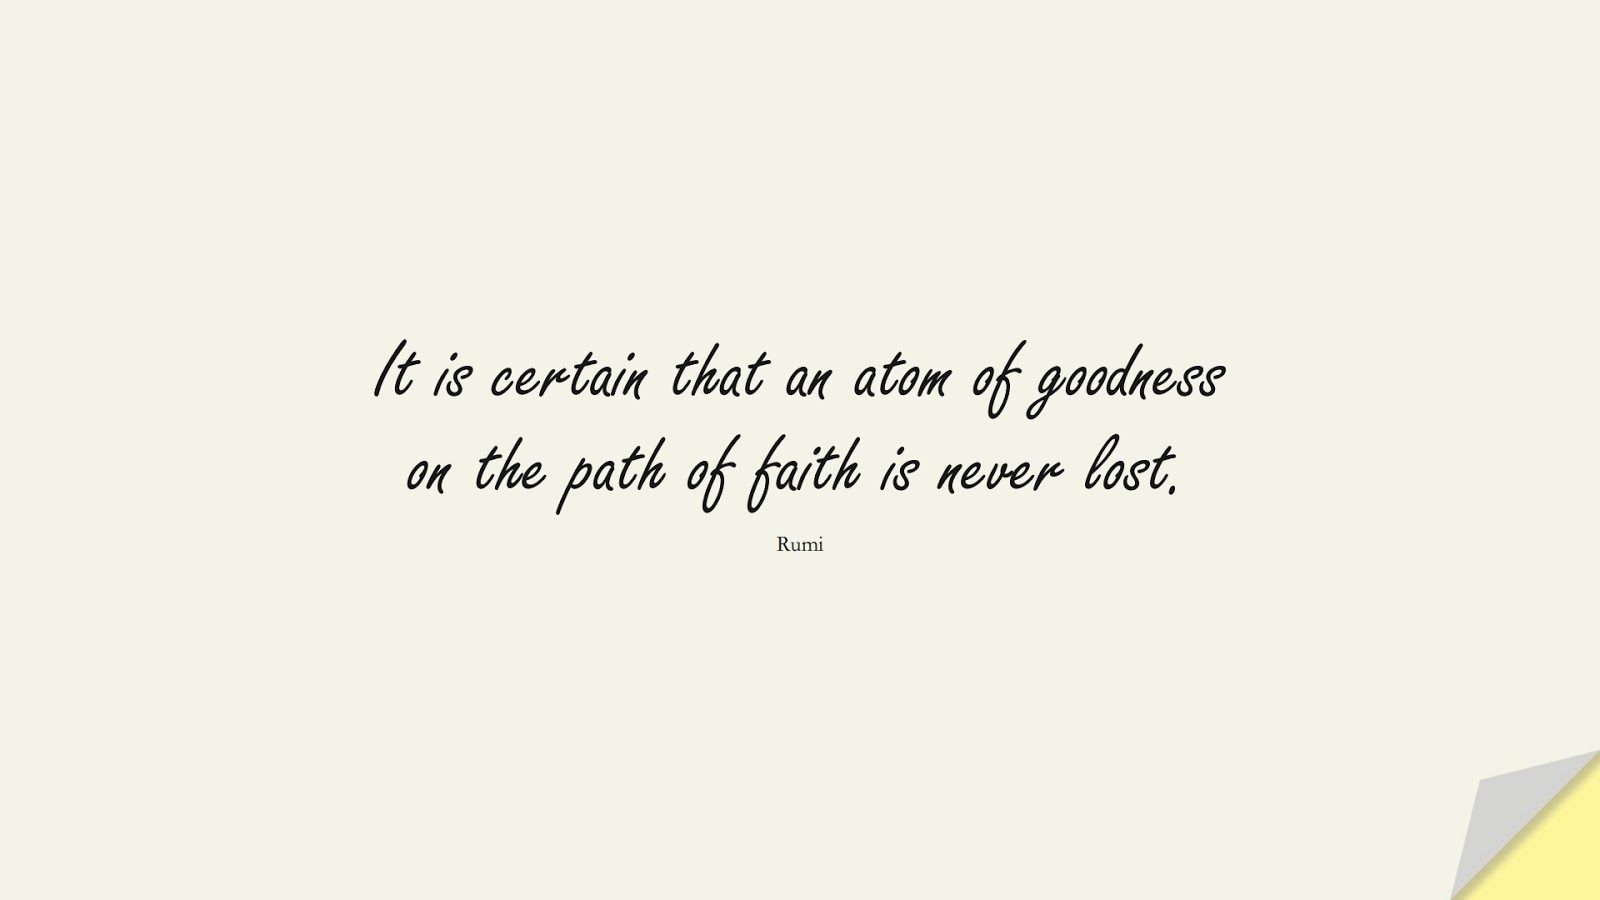 It is certain that an atom of goodness on the path of faith is never lost. (Rumi);  #RumiQuotes